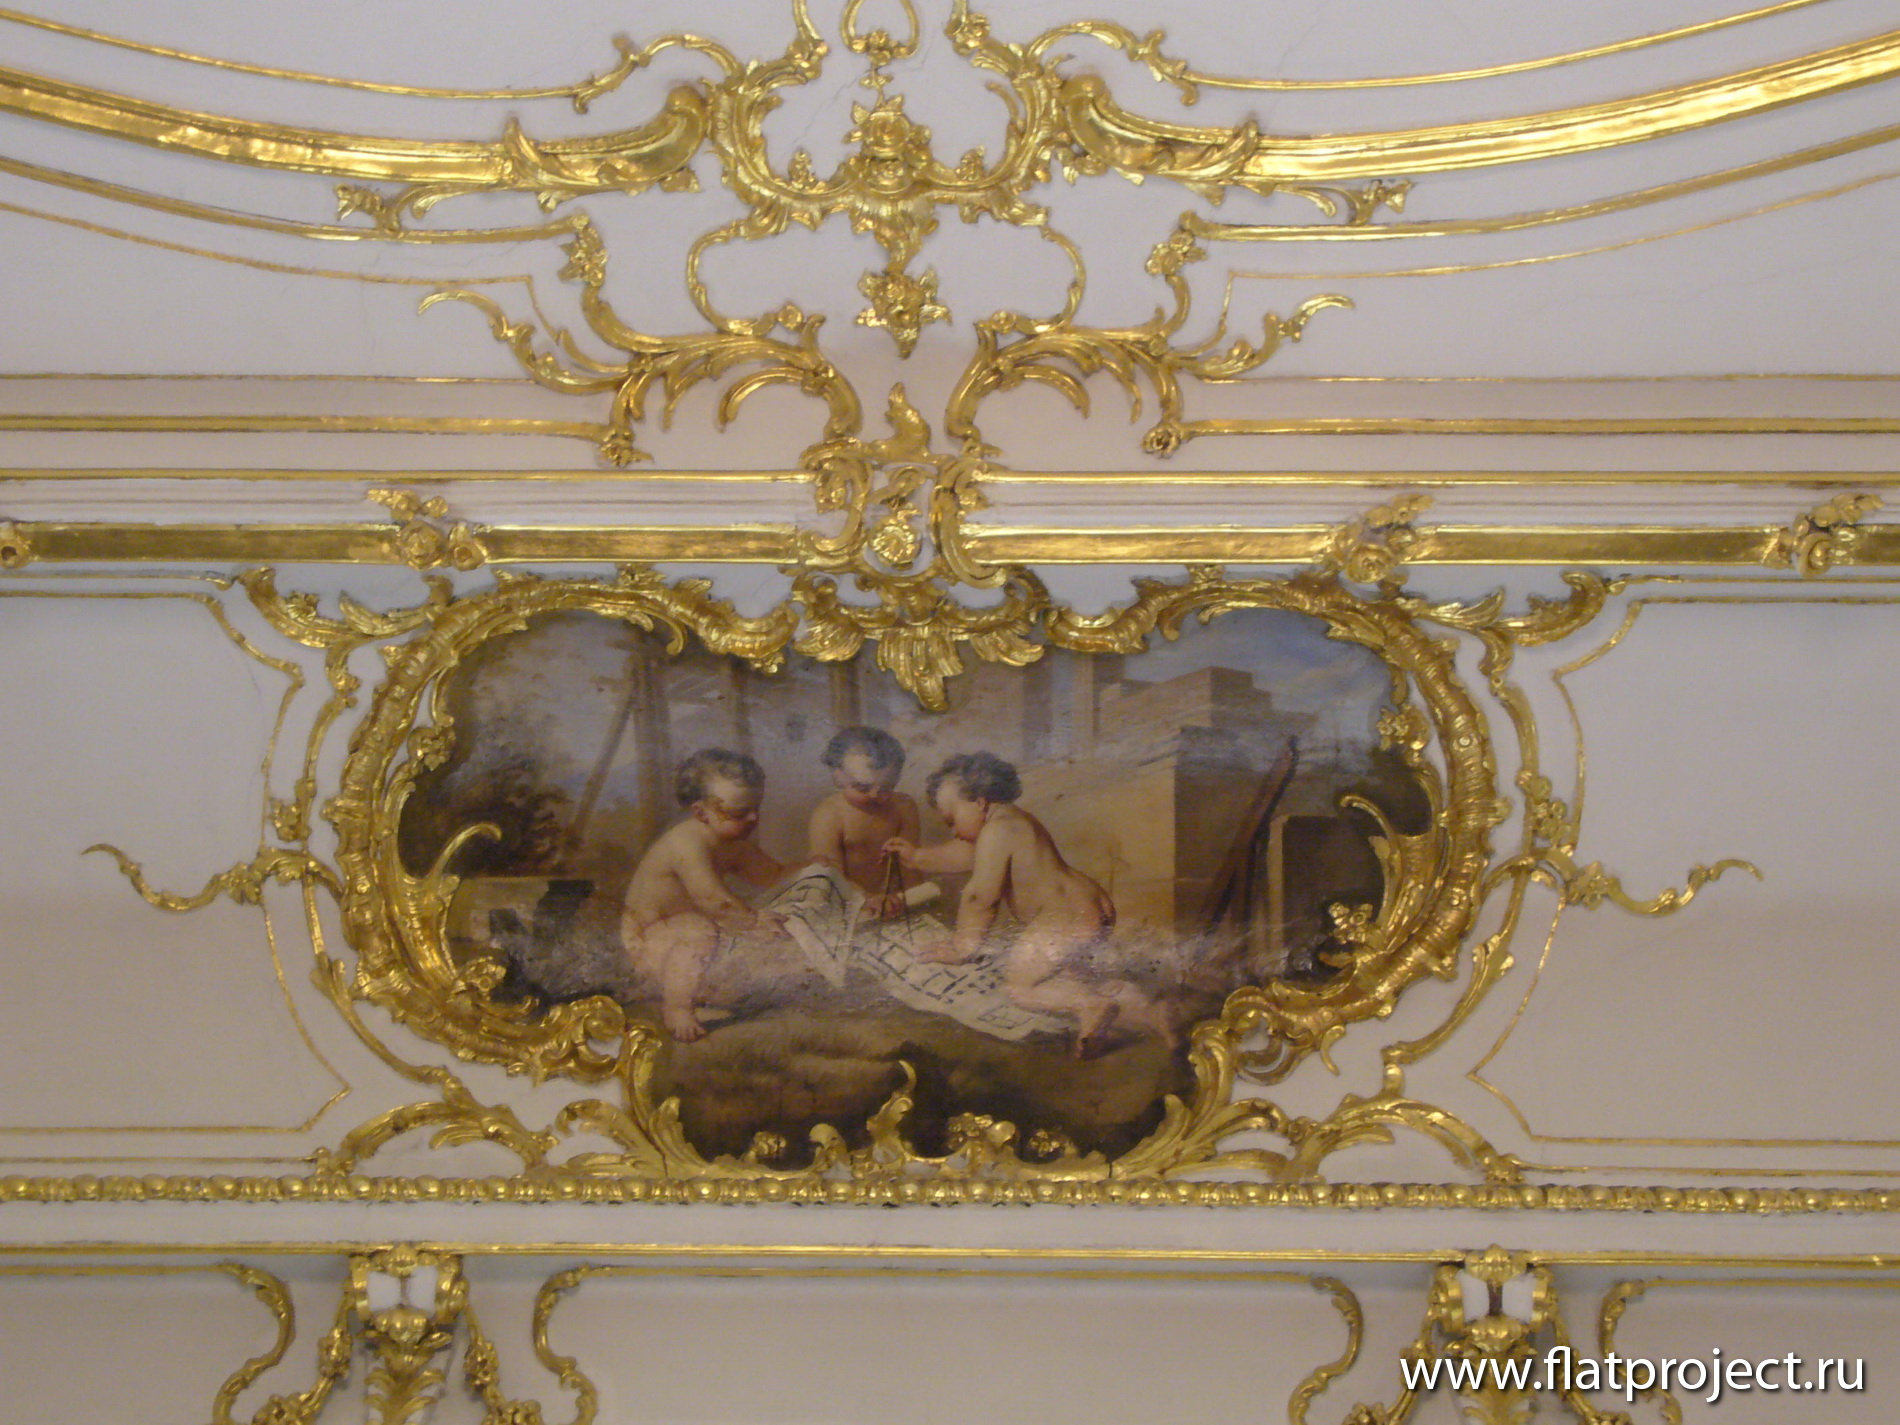 The State Russian museum interiors – photo 38